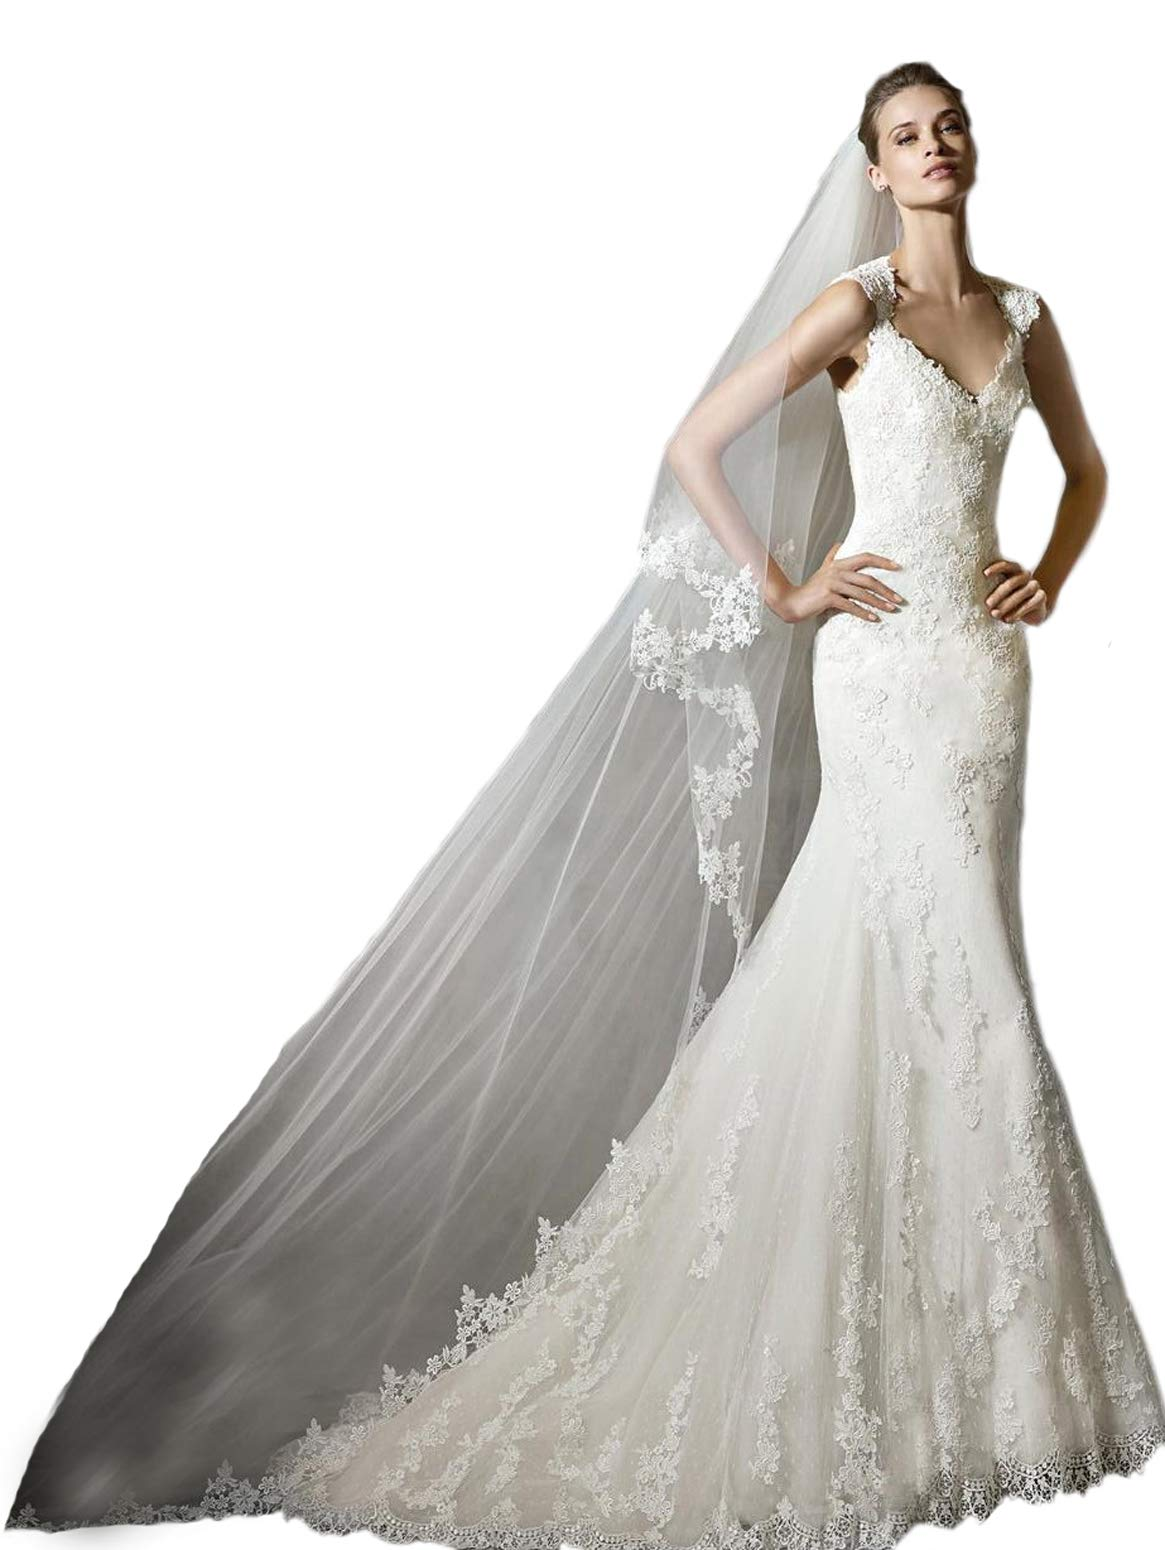 Passat Ivory 2 Tiers Soft French lace wedding veils Flowers Cathedral Bridal Veil With Comb 262